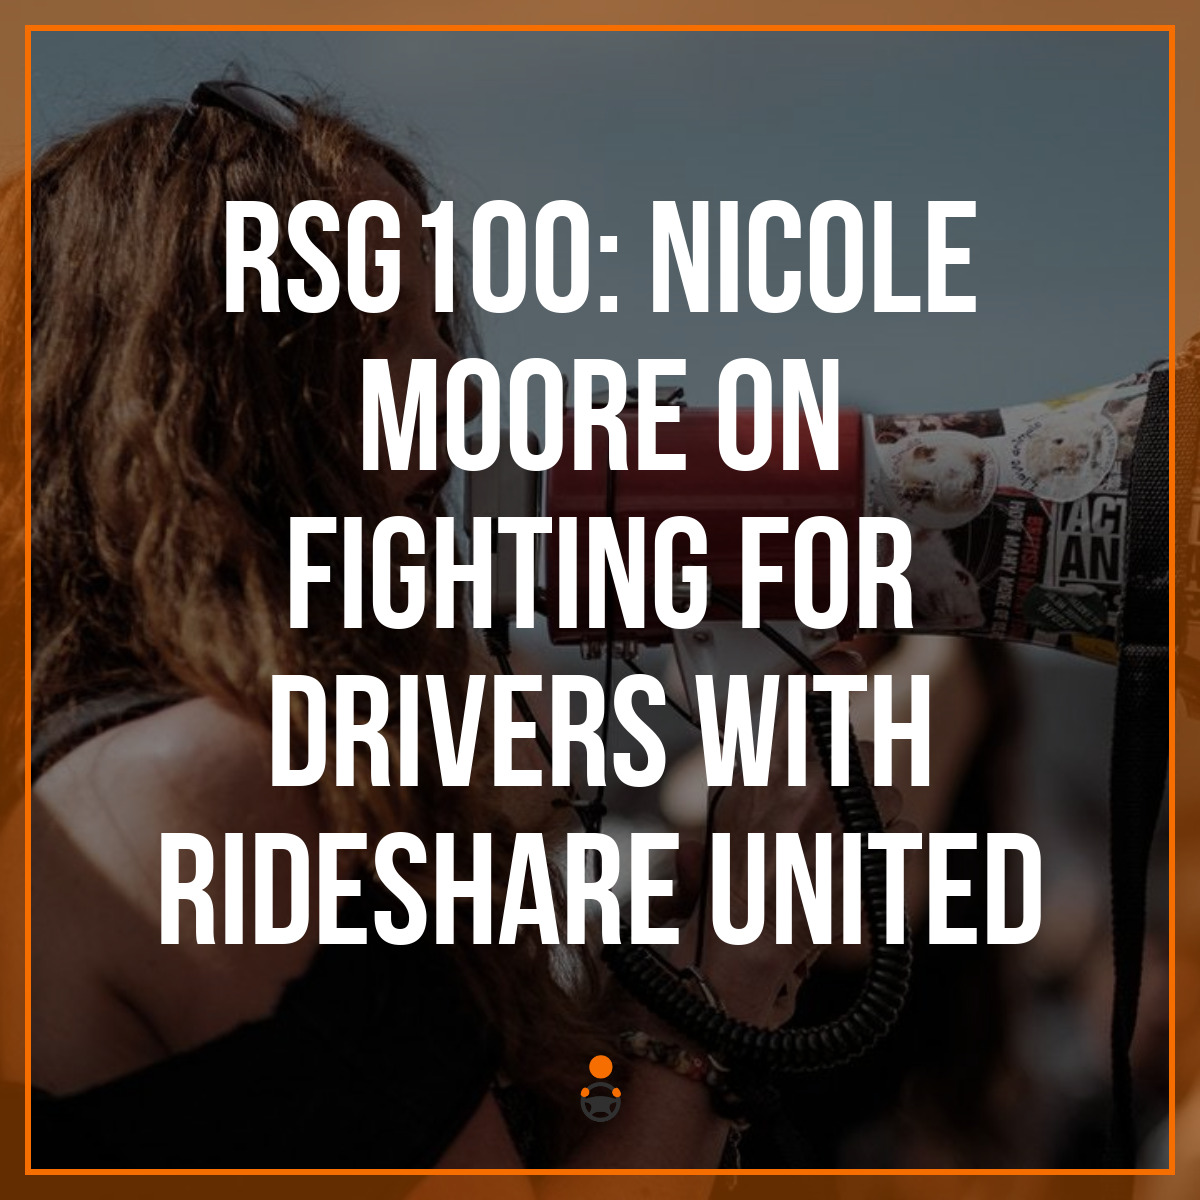 RSG100: Nicole Moore on Fighting for Drivers with Rideshare United